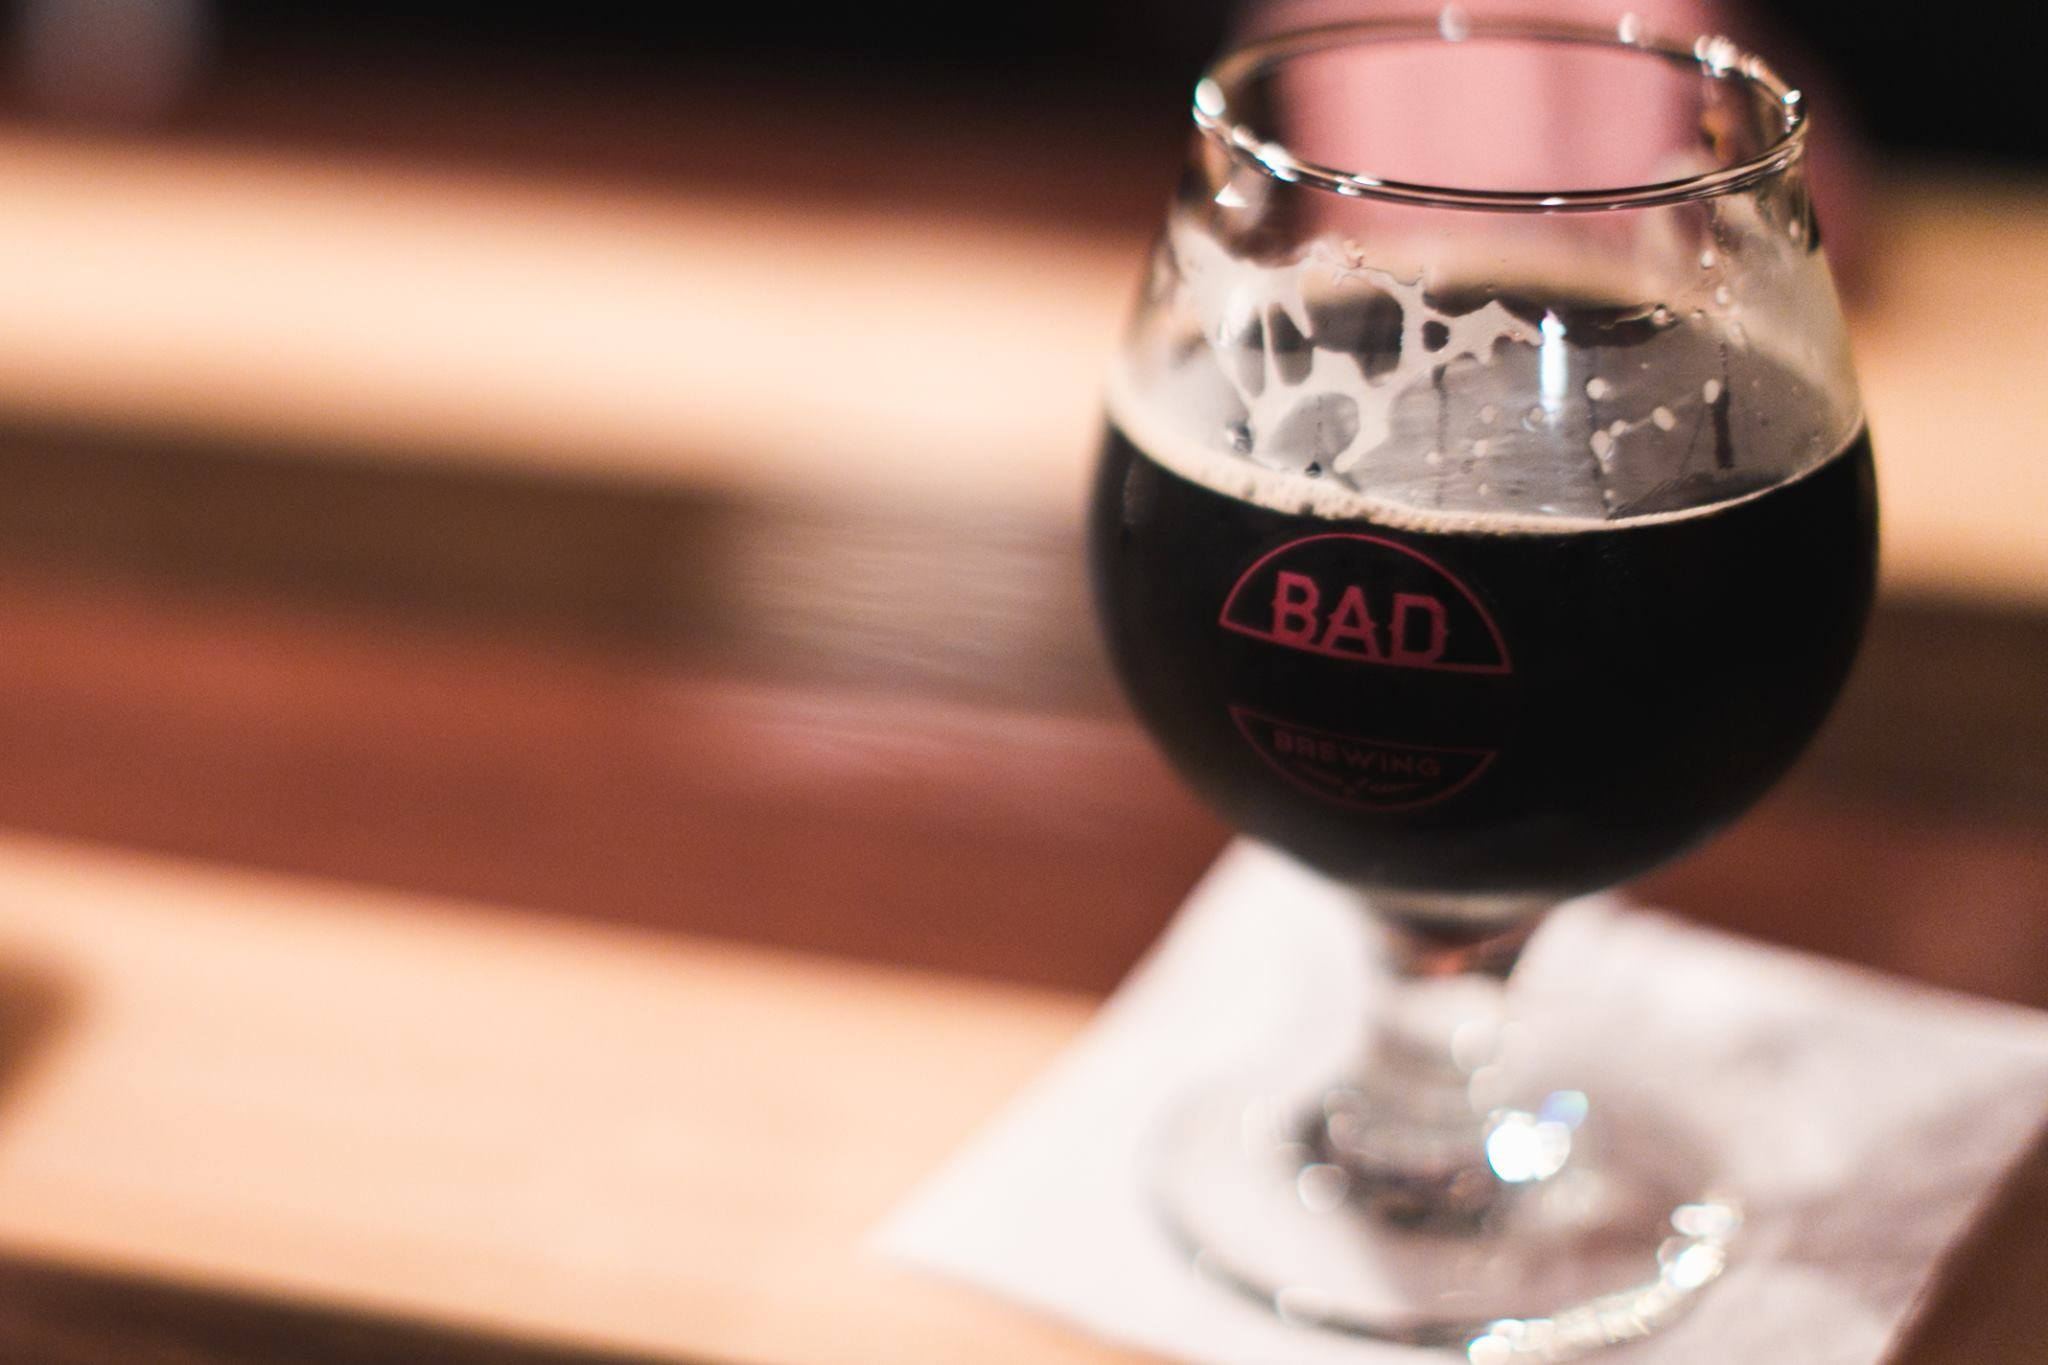 Dark Addiction       5.2% ABV  37 IBU   Spring, Summer, Fall or Winter. Don't miss out on this intensely roasted, silky smooth chocolatey goodness known as Dark Addiction. This beer pours dark as night with a nice tan frothy head and a creaminess from the added lactose milk sugars. Rumor has it that chocolate milk is great for recovering proteins and nutrients after a hard work out, once you try Dark Addiction you may consider this your go to drink after that 5K you struggle through this year.